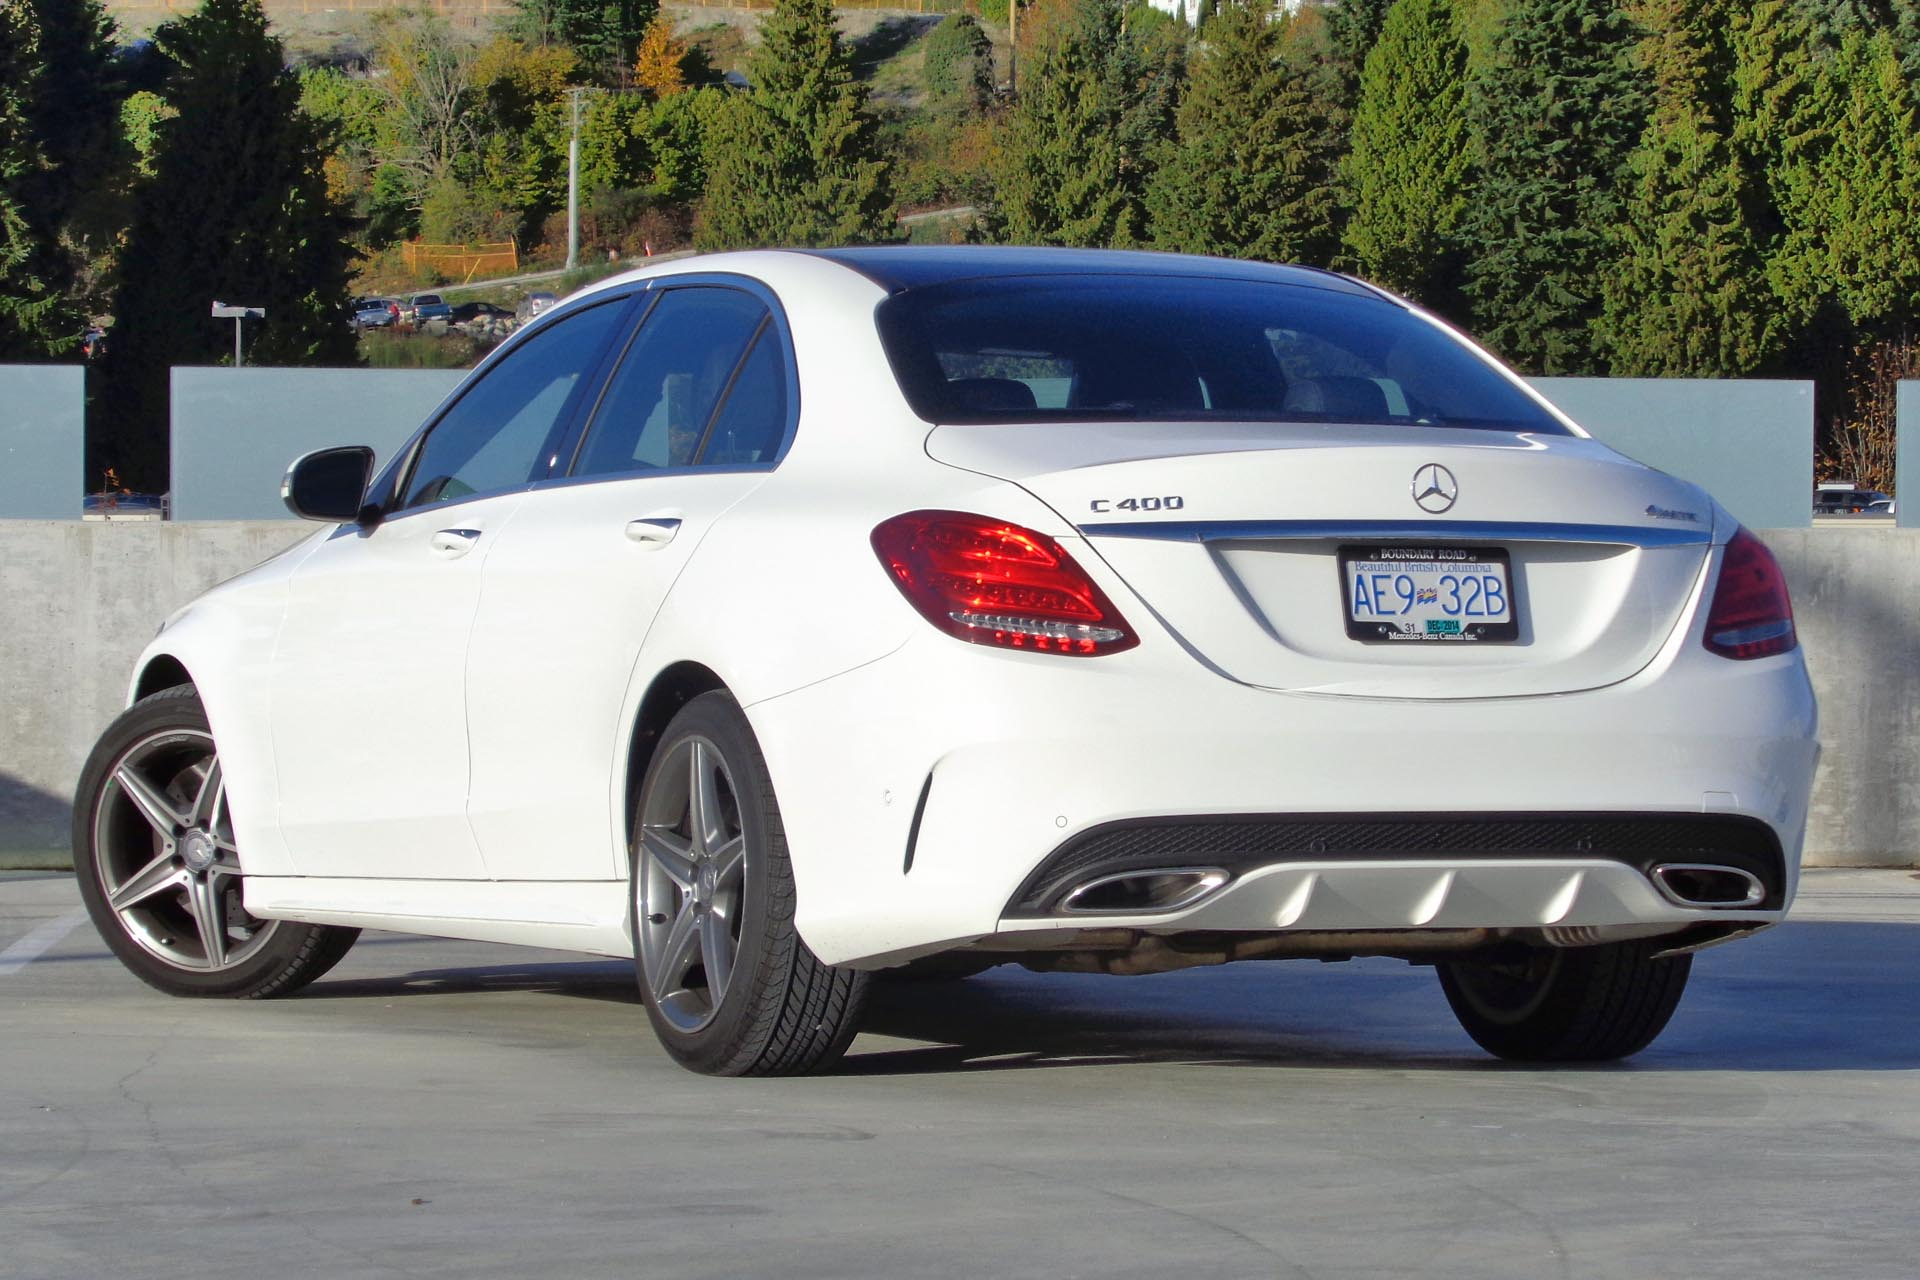 2015 Mercedes Benz C 400 4Matic Autosca